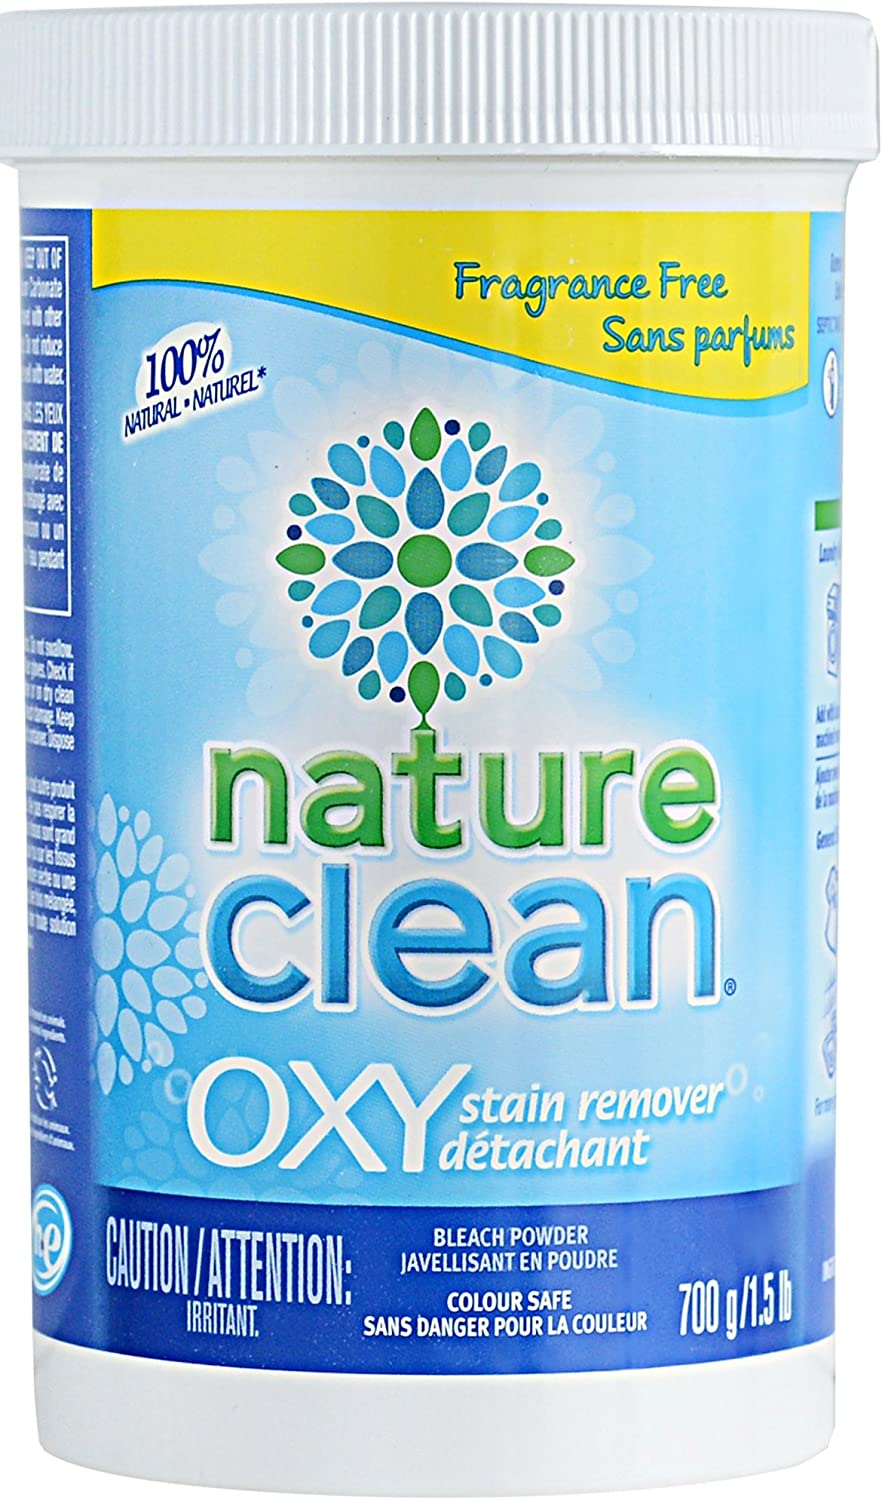 Nature Clean Oxy Stain Remover Powder, Chlorine-Free, Naturally Derived, Fragrance-Free, 24.69 Oz